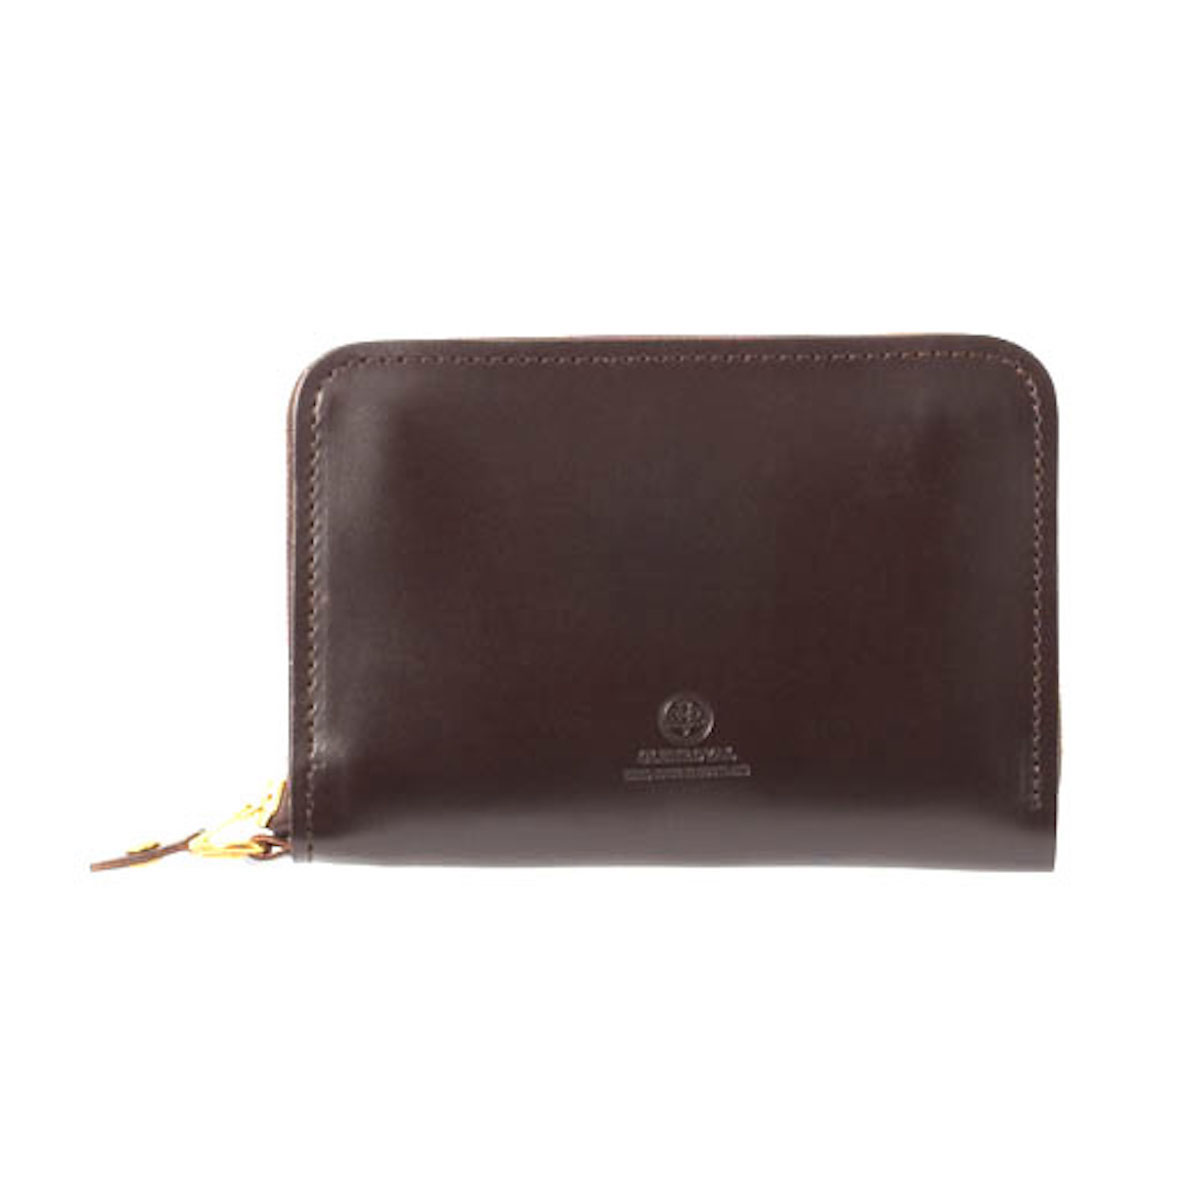 GLENROYAL / WALLET WITH DIVIDERS -CIGAR